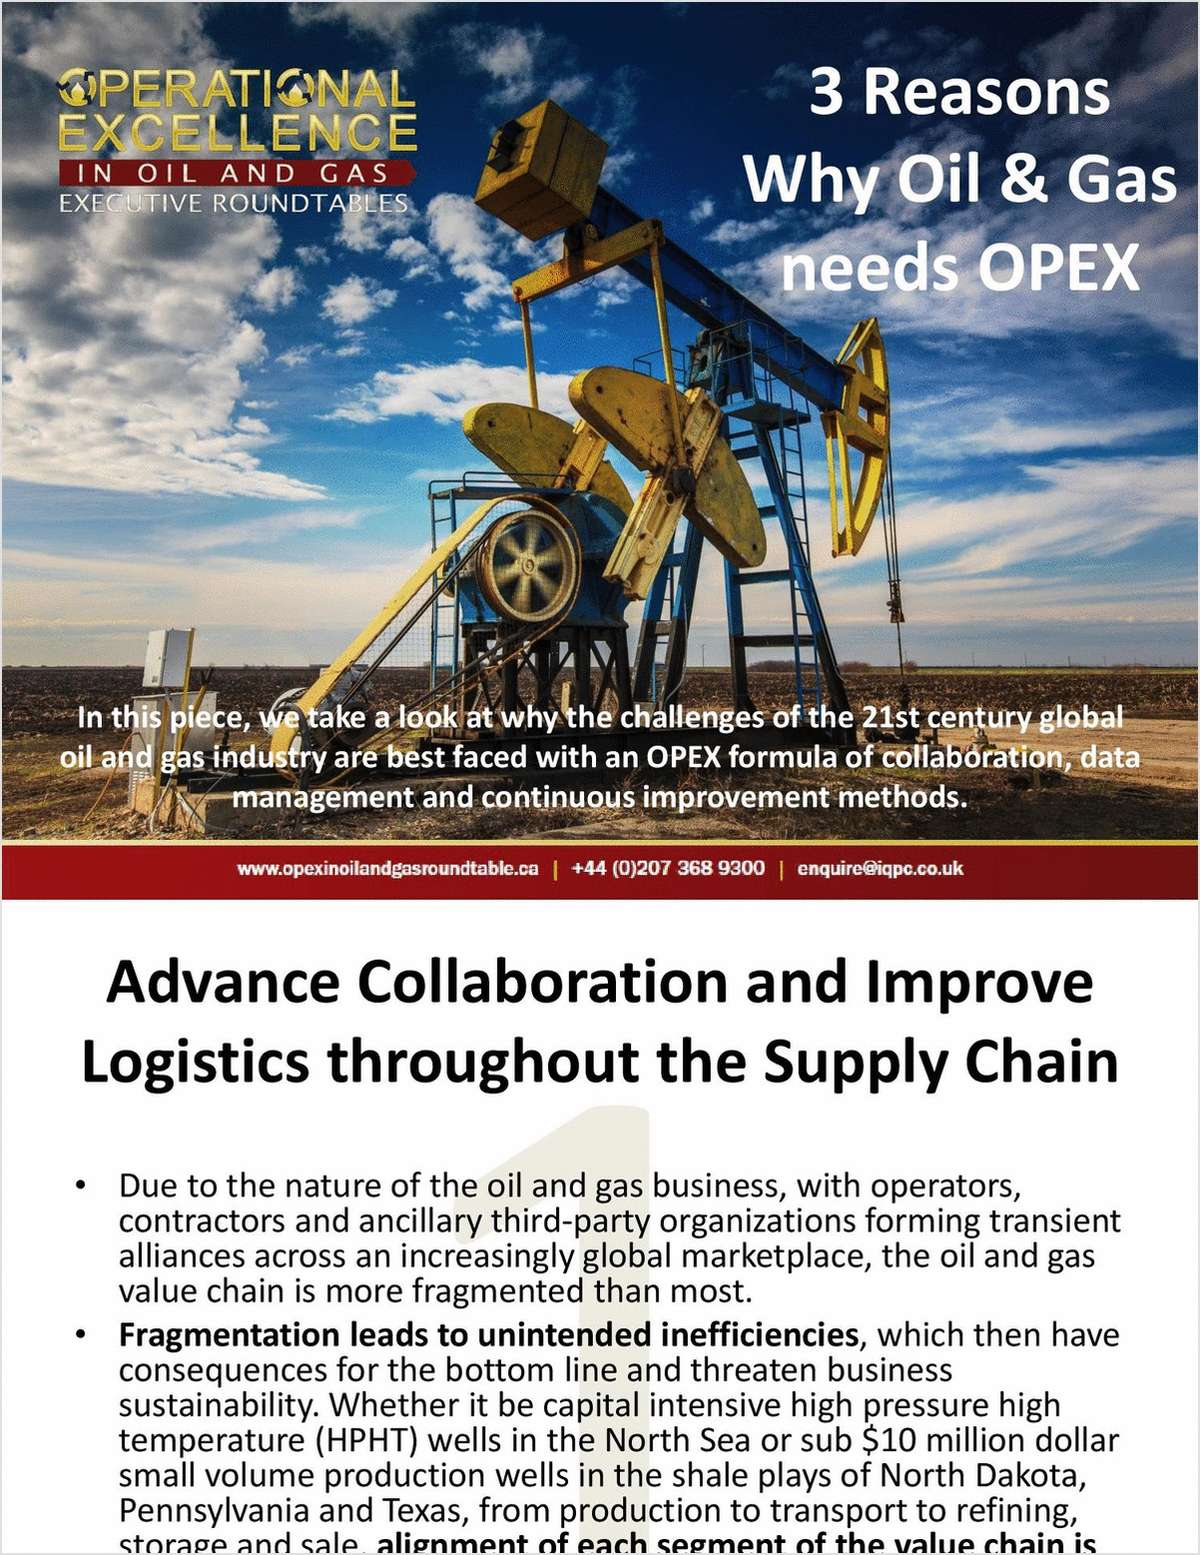 3 Reasons Why Oil and Gas Needs OPEX